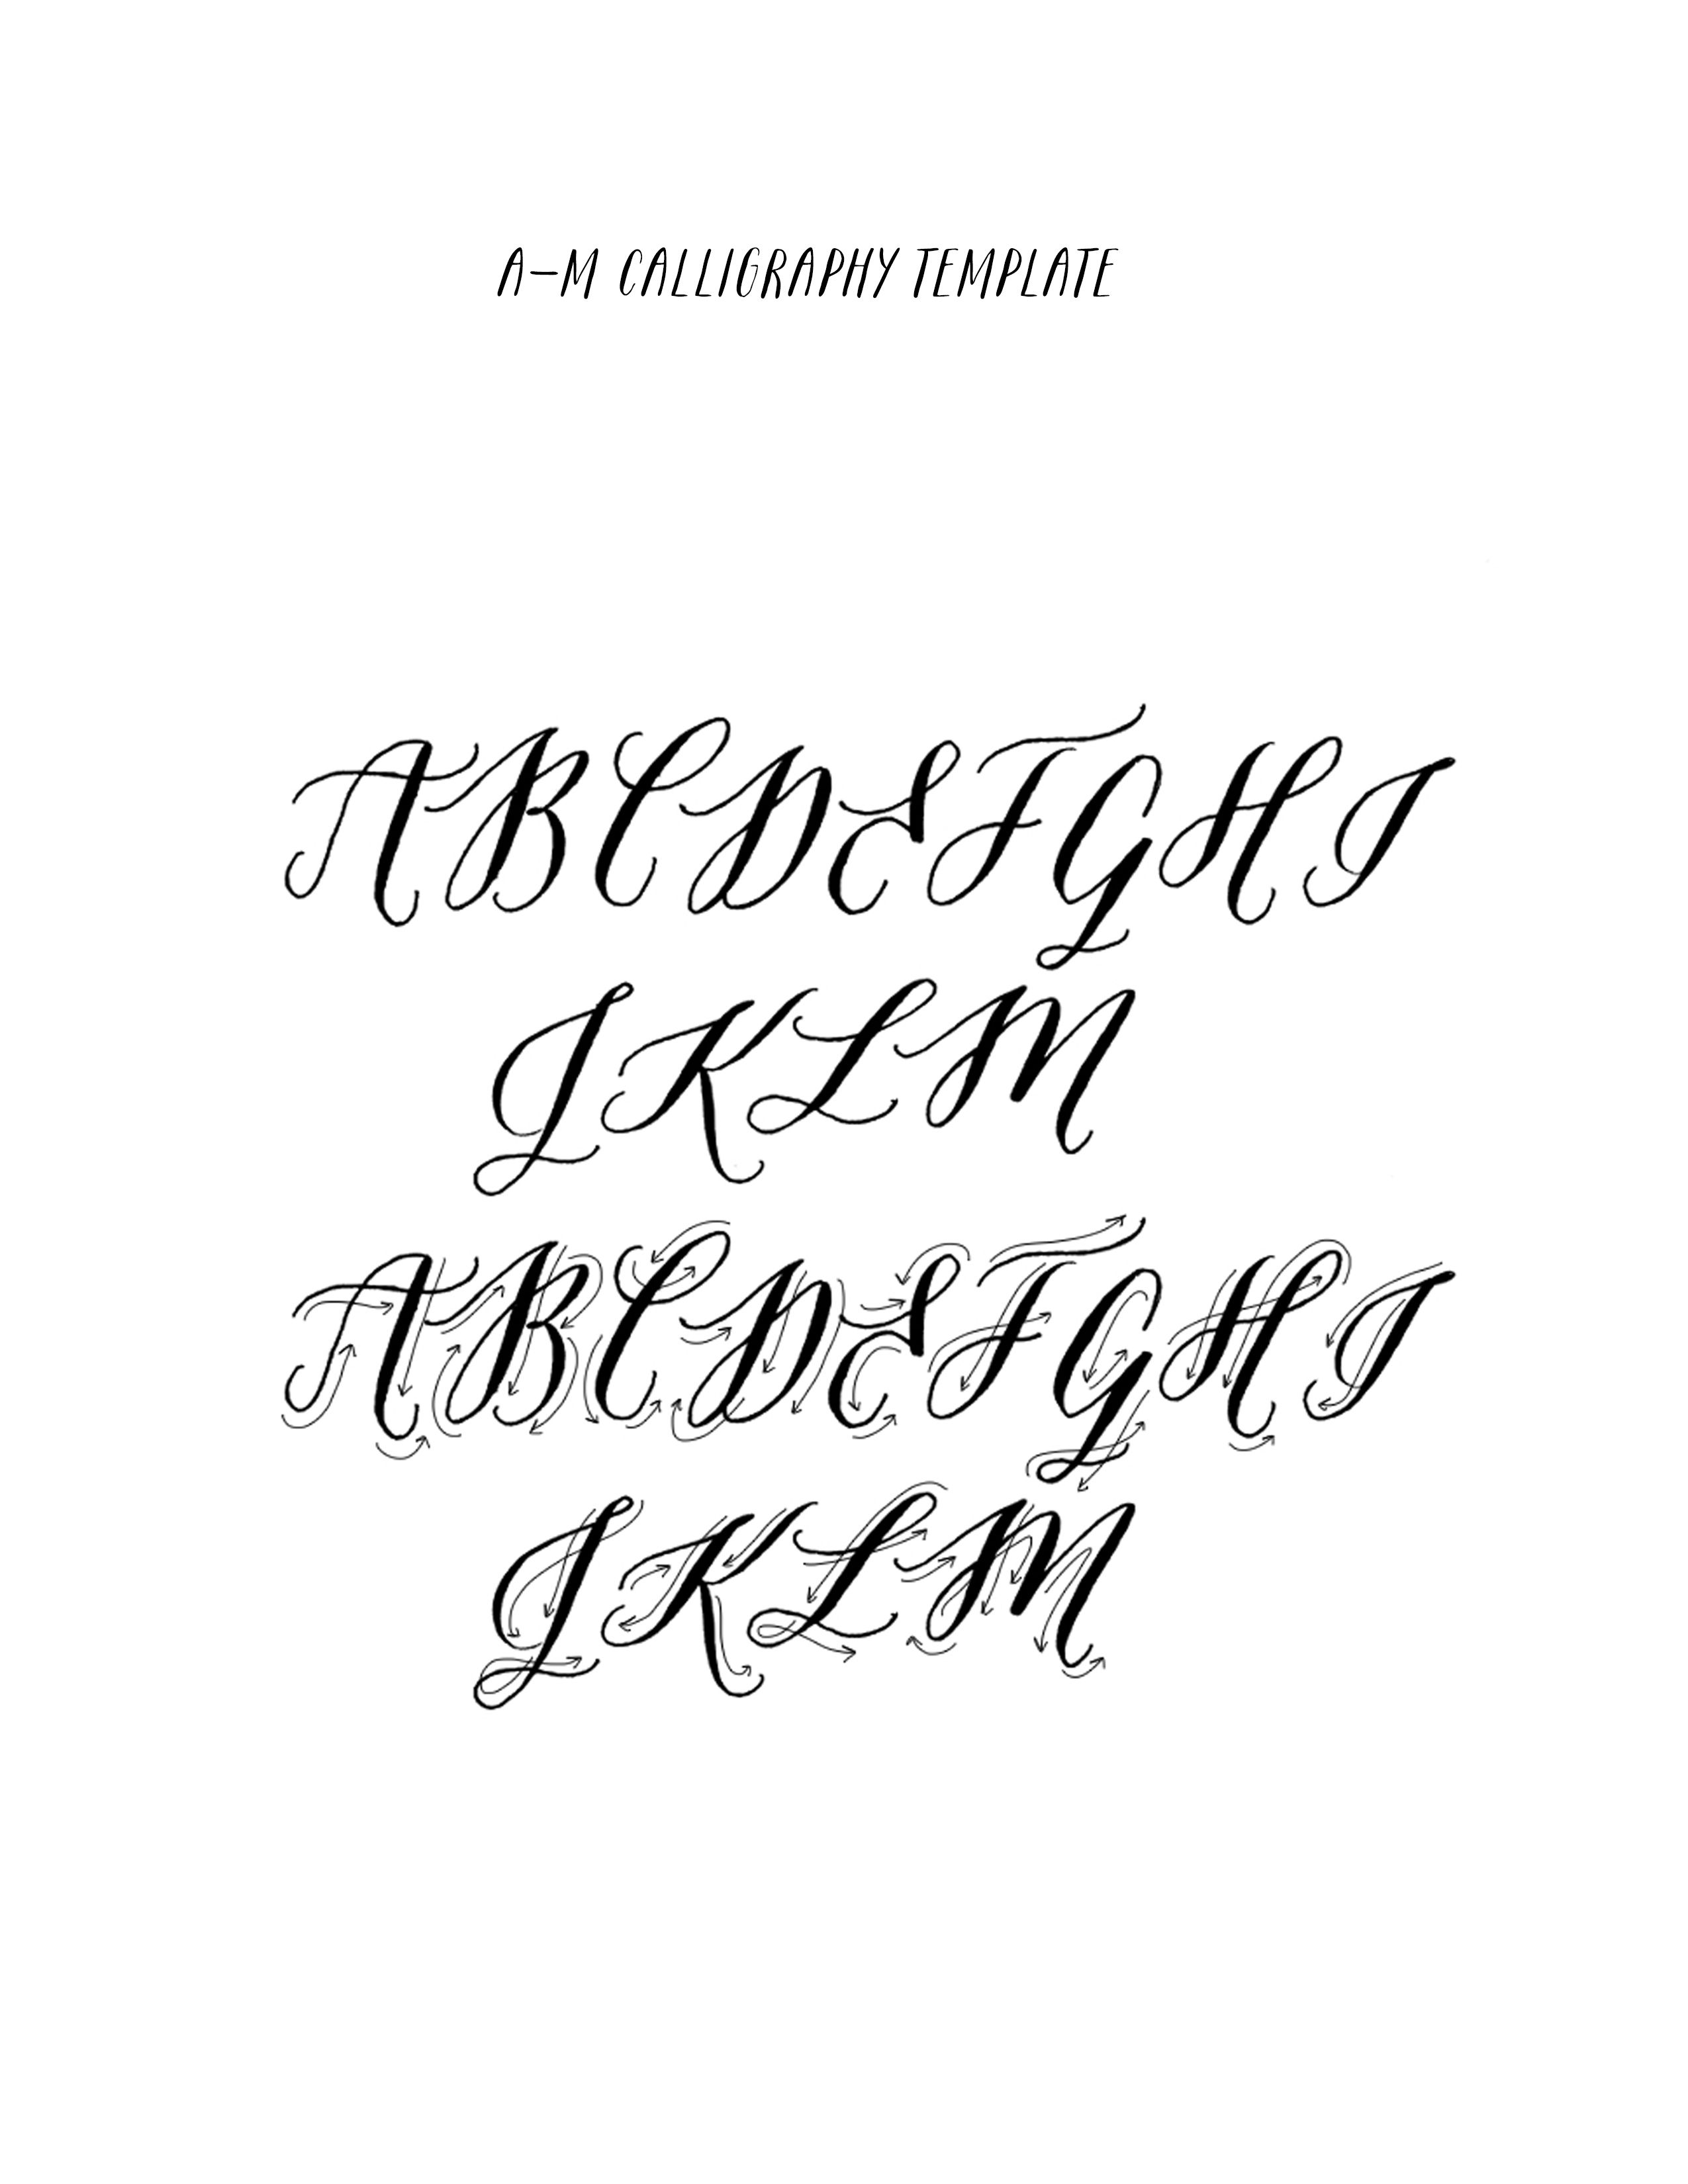 Pin By Mariana Garcia On Calligraphy